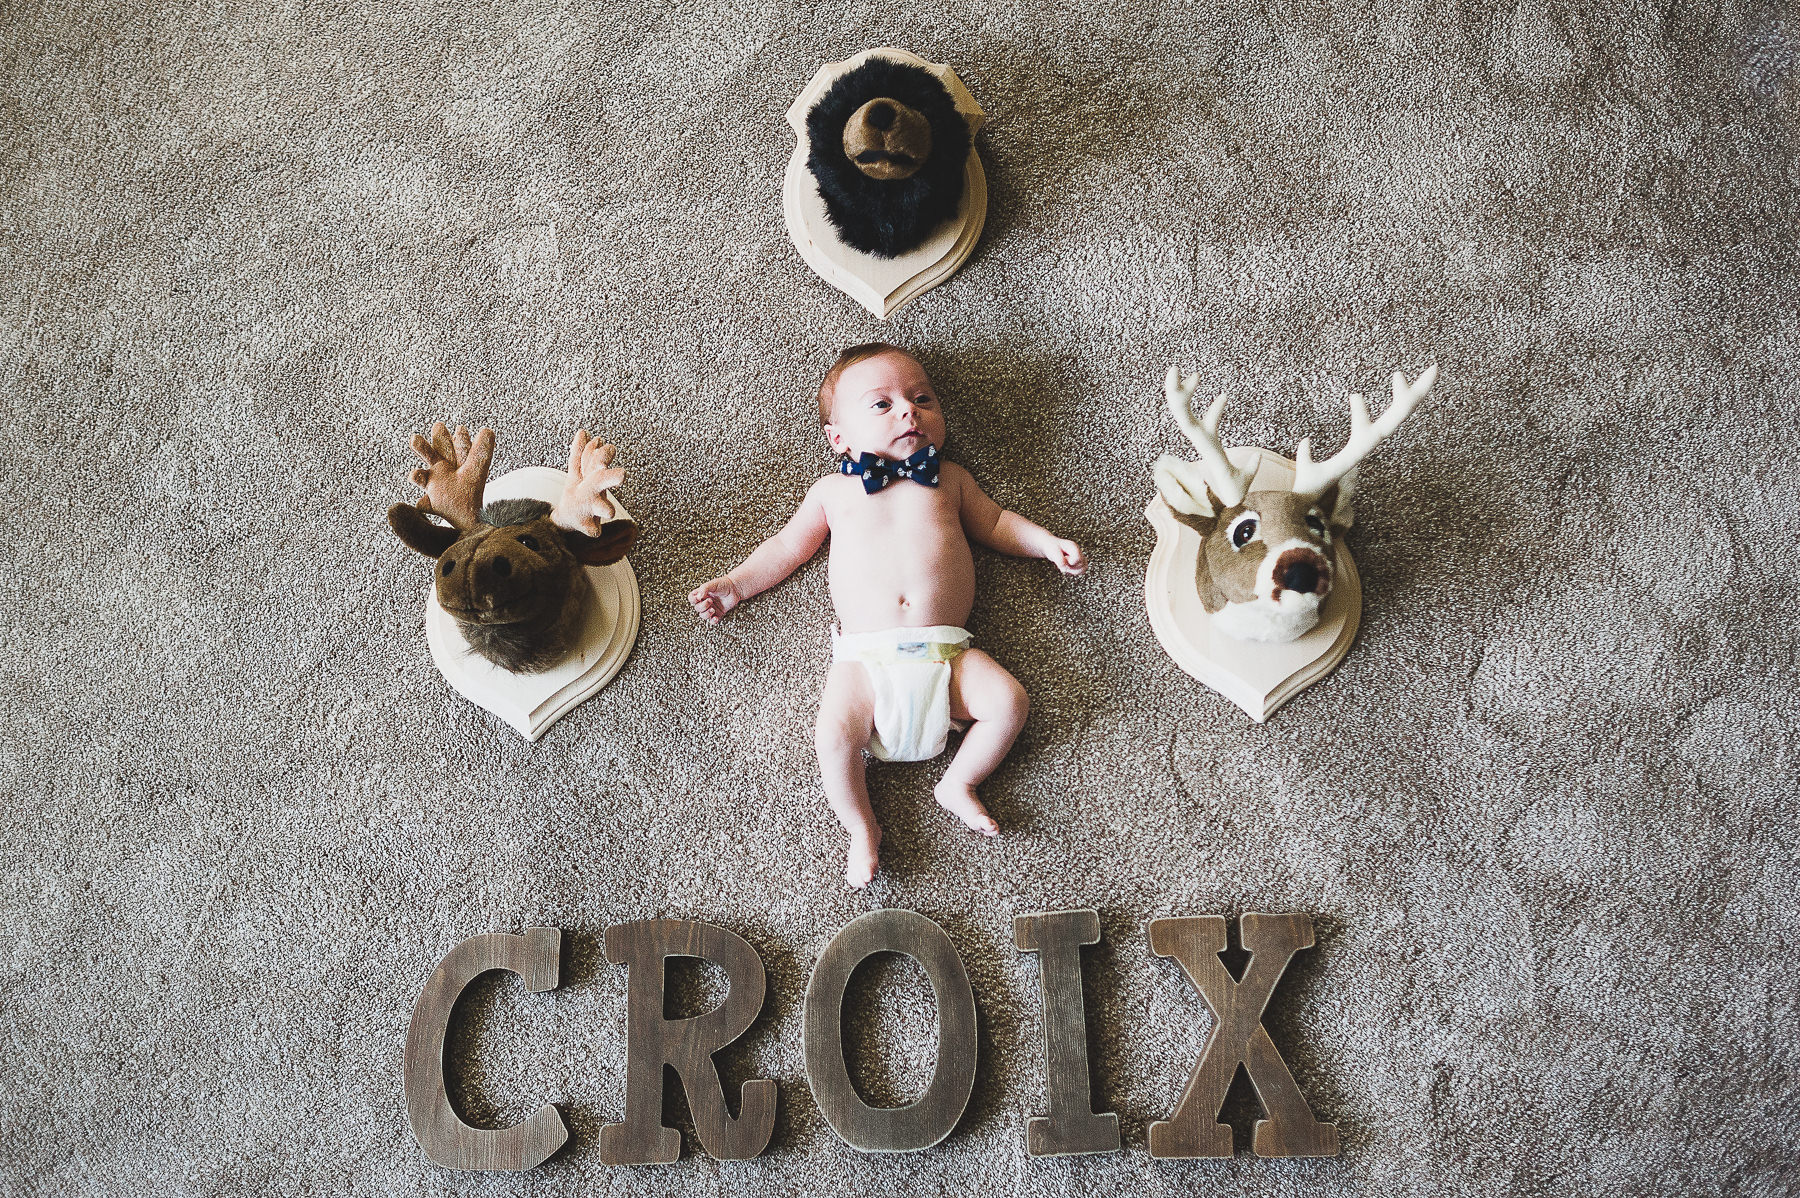 breighton-and-basette-photography-copyrighted-image-blog-croix-newborn-045.jpg